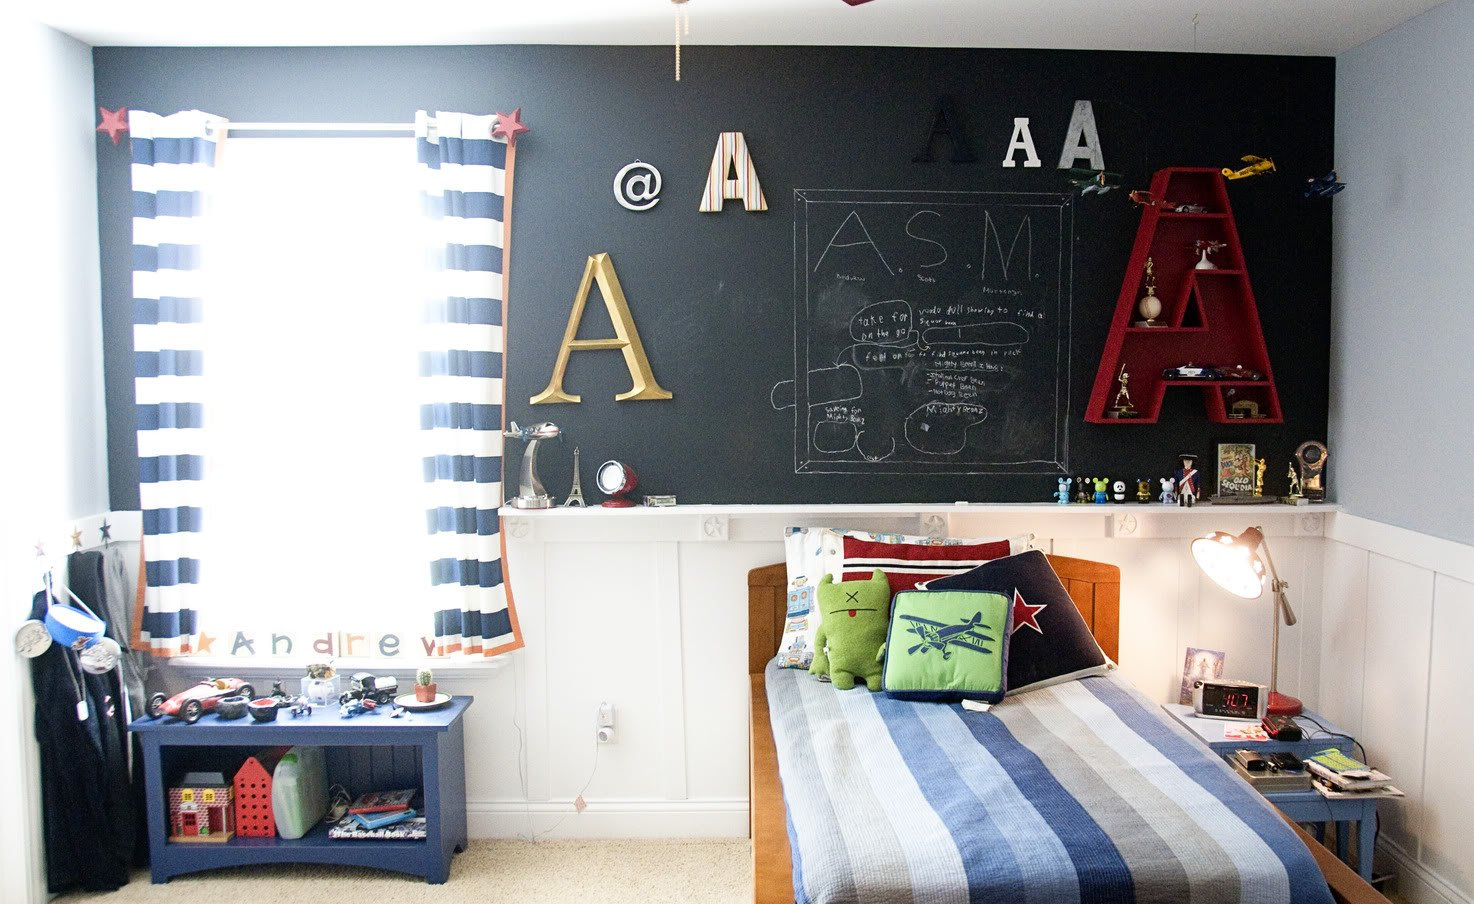 Decorating Ideas for a Kids Bedroom That Will Inspire -